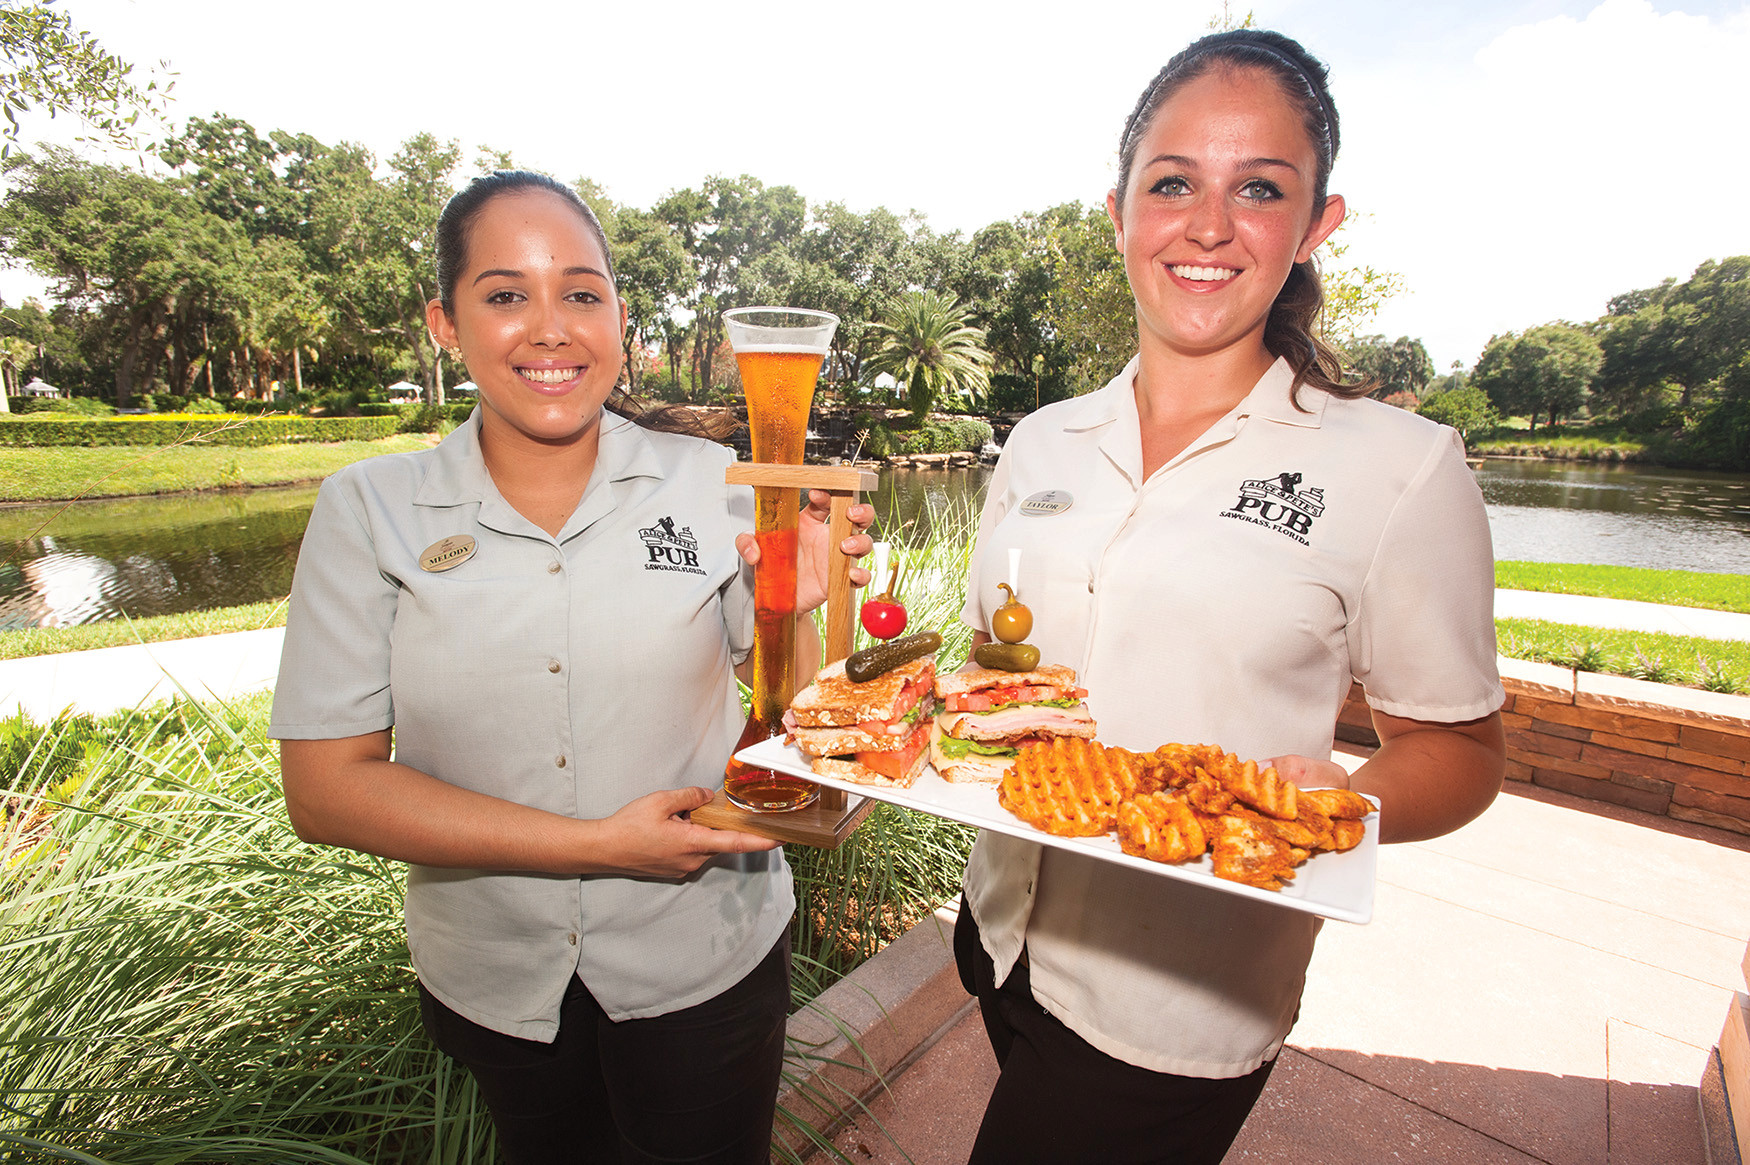 Melody Rodriguez Burgos and Taylor Drury of Alice & Pete's Pub inside Sawgrass Marriott Golf Resort & Spa in Ponte Vedra present a yard of Intuition People's Pale Ale and Pete's Designer club sandwich with ham, turkey, Swiss, cheddar, bacon, lettuce and tomato.